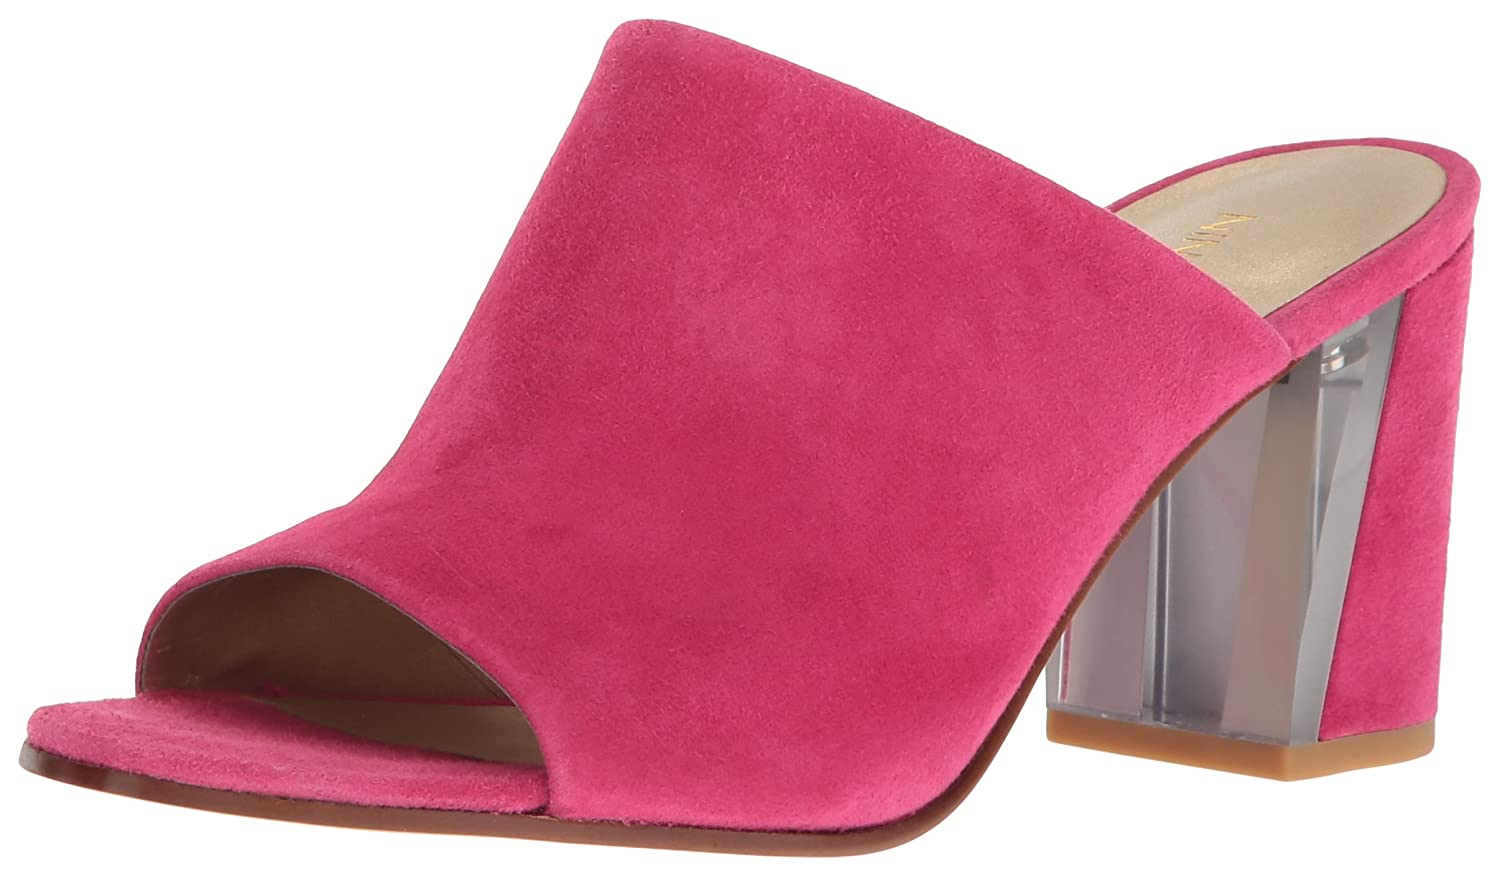 Nine West Women's Gemily Suede Mule